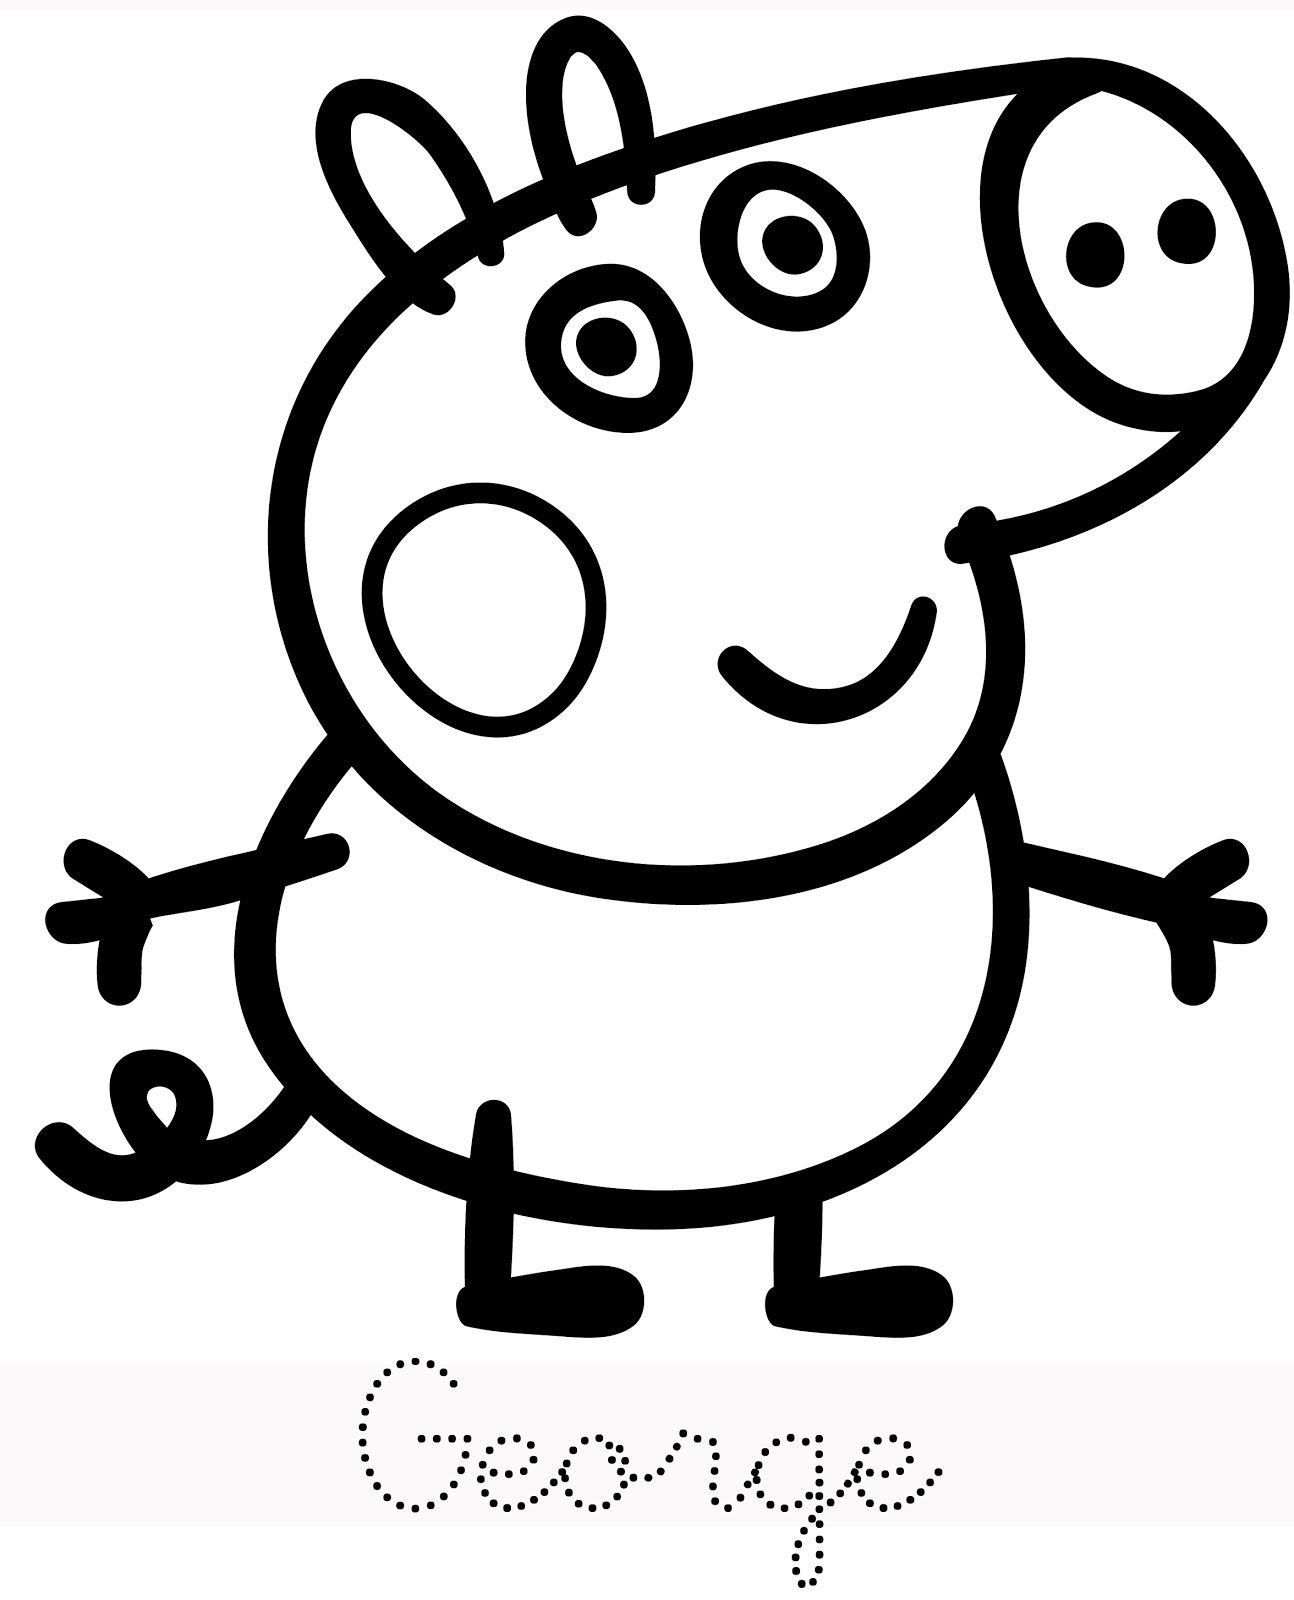 Peppa Pig Coloring Sheets Unique George Trace Color Sheets Peppa Pig Coloring Pages Peppa Pig Colouring Peppa Pig Drawing